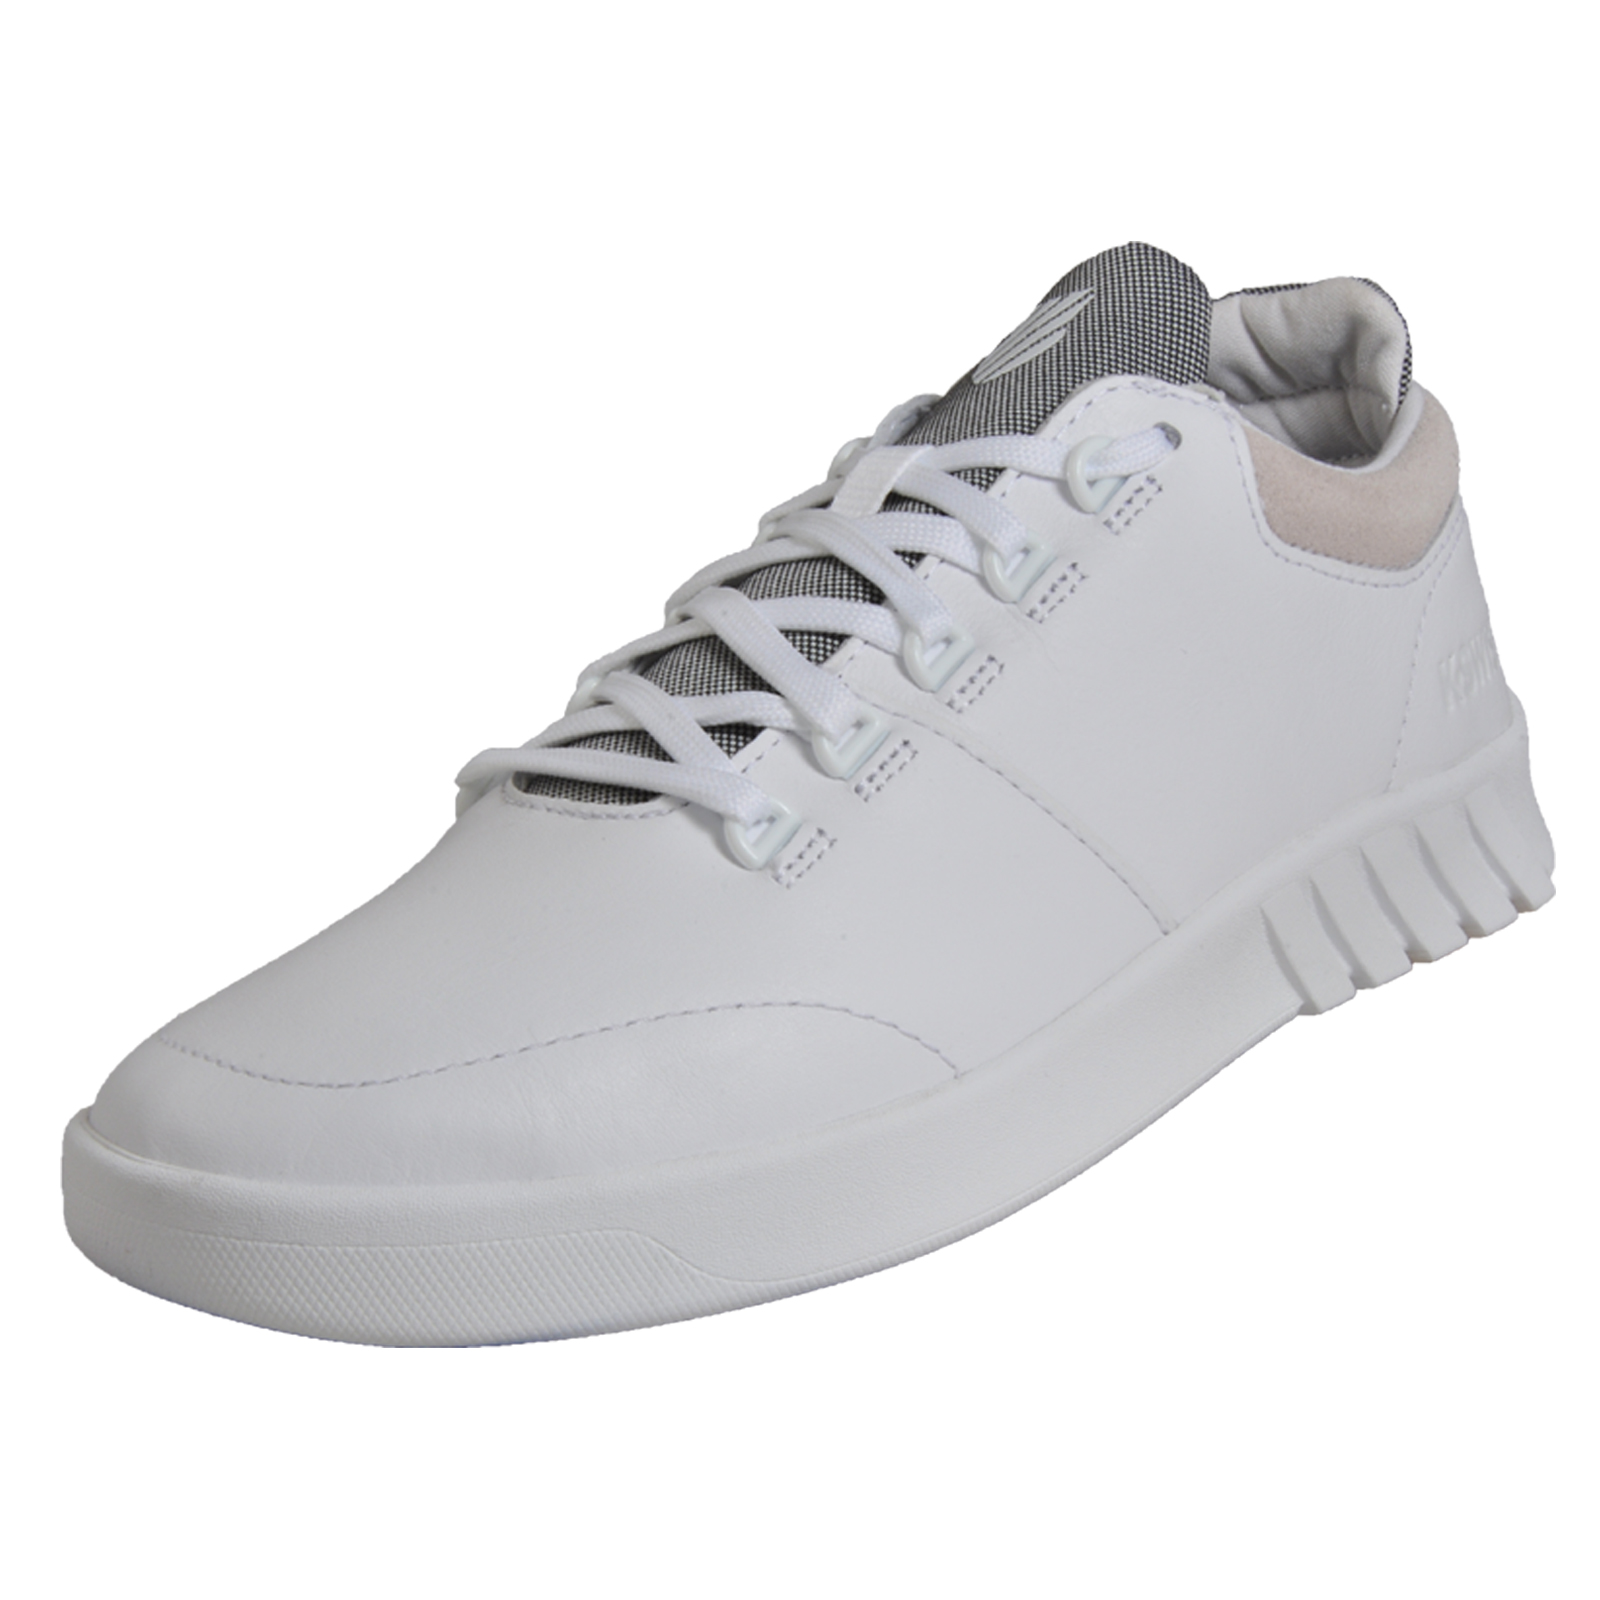 82558b5a5531b Details about K Swiss Mens Aero Trainer Leather Casual Retro Fitness Gym  Trainers White